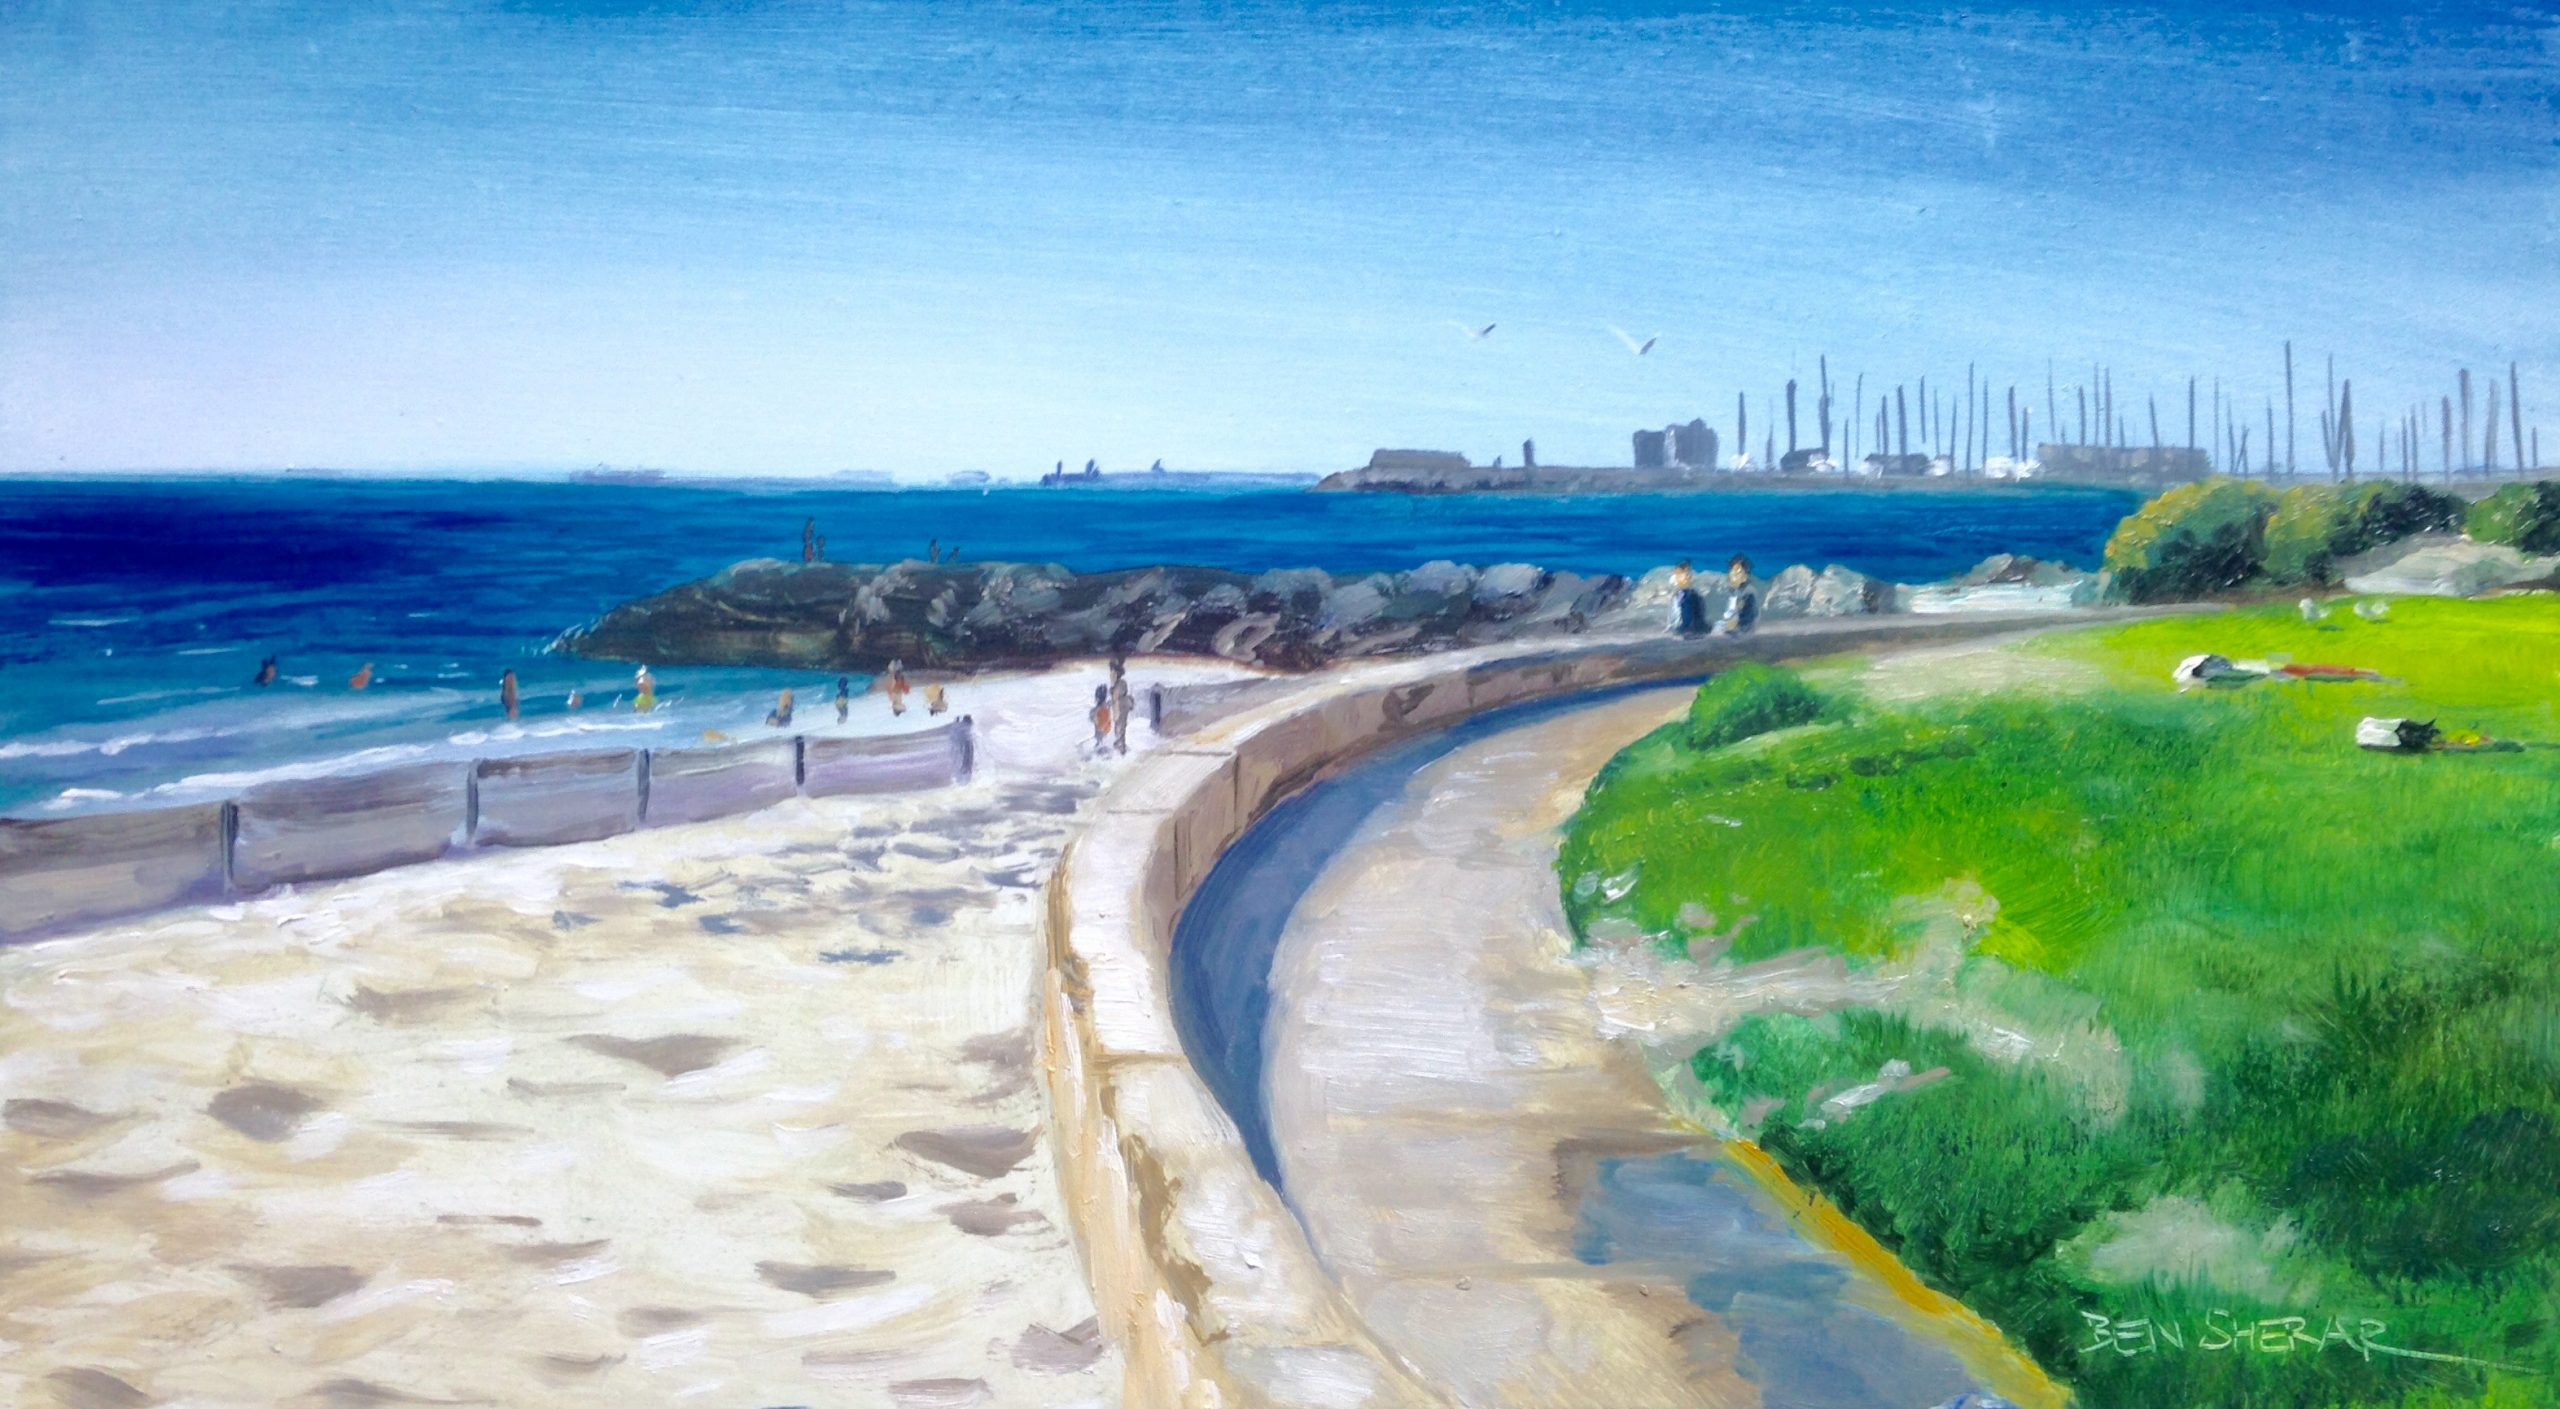 Sunny south beach South Fremantle original oil painting by Ben Sherar